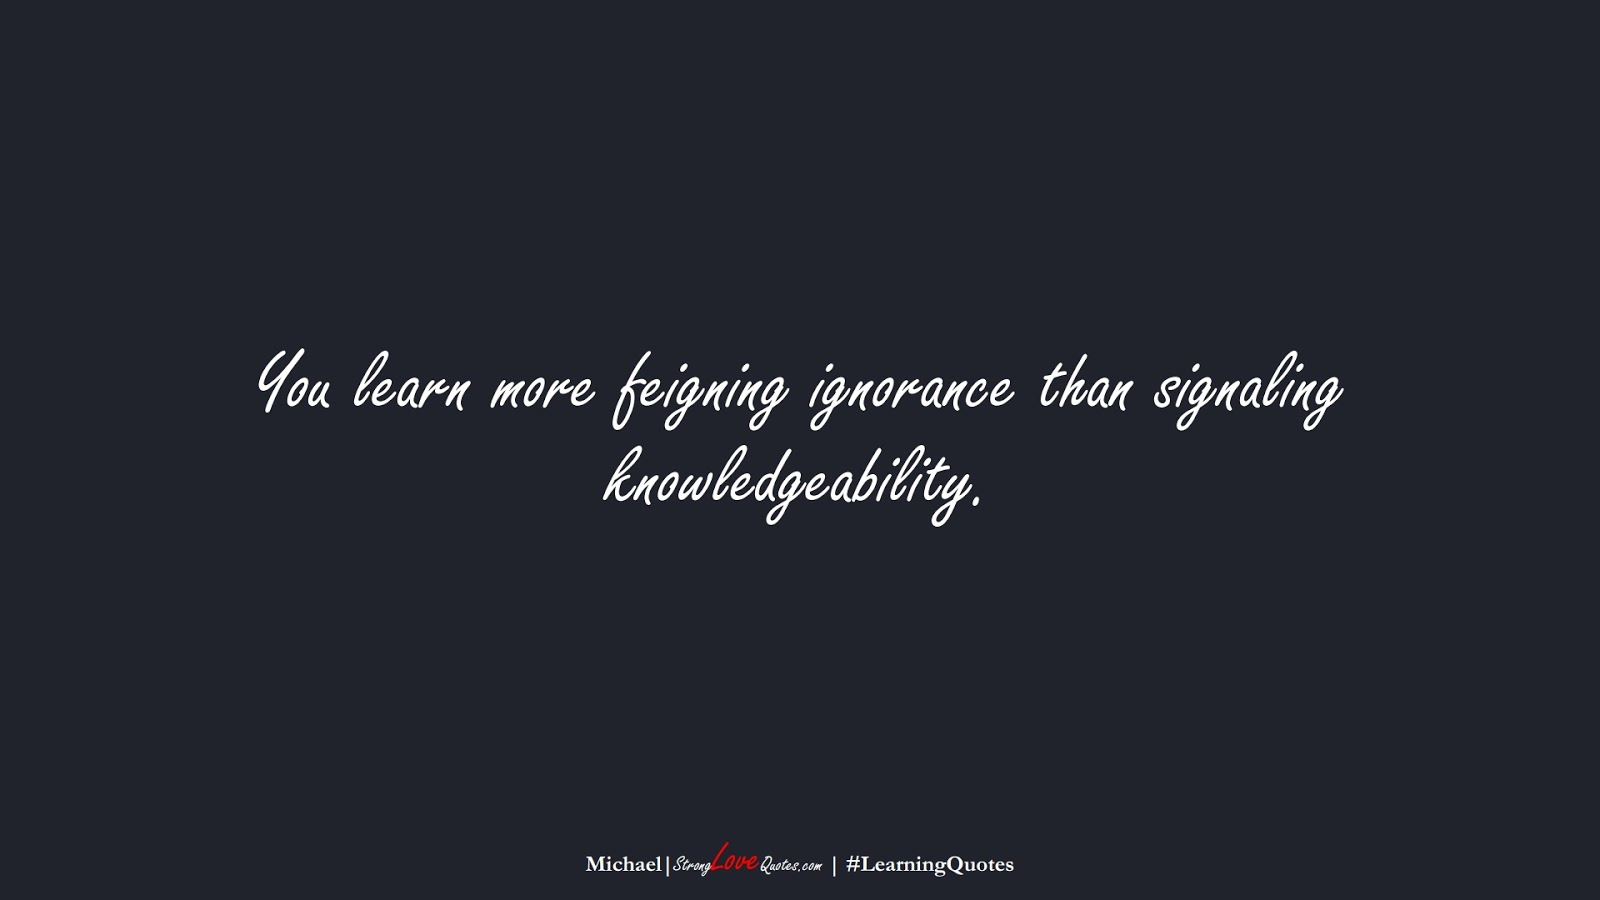 You learn more feigning ignorance than signaling knowledgeability. (Michael);  #LearningQuotes